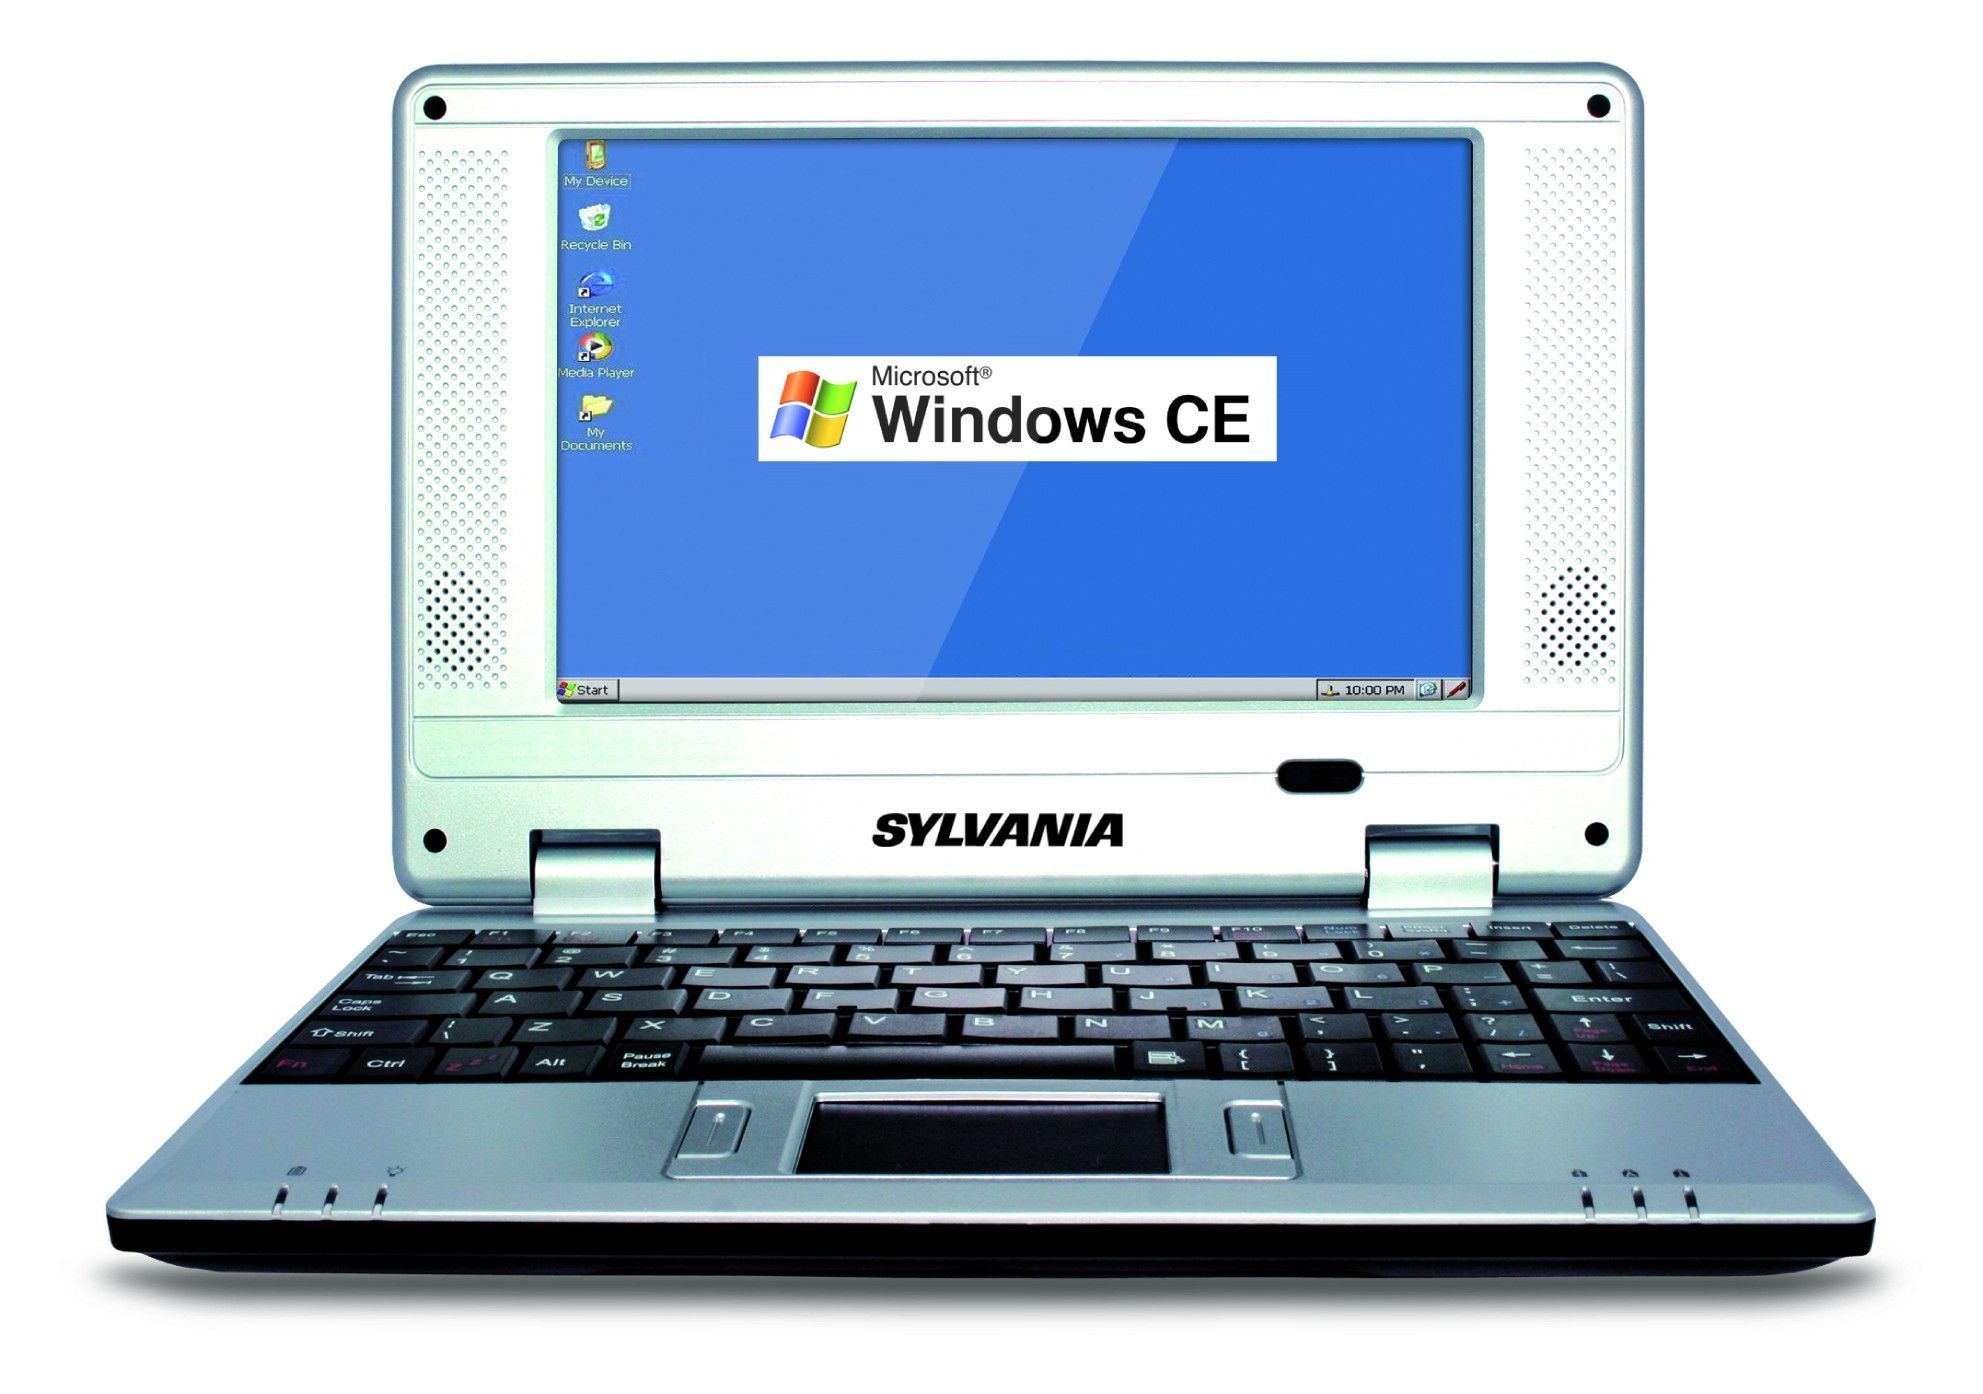 Sylvania 7 inch Netbook/Mini Laptop. Rs5999. With